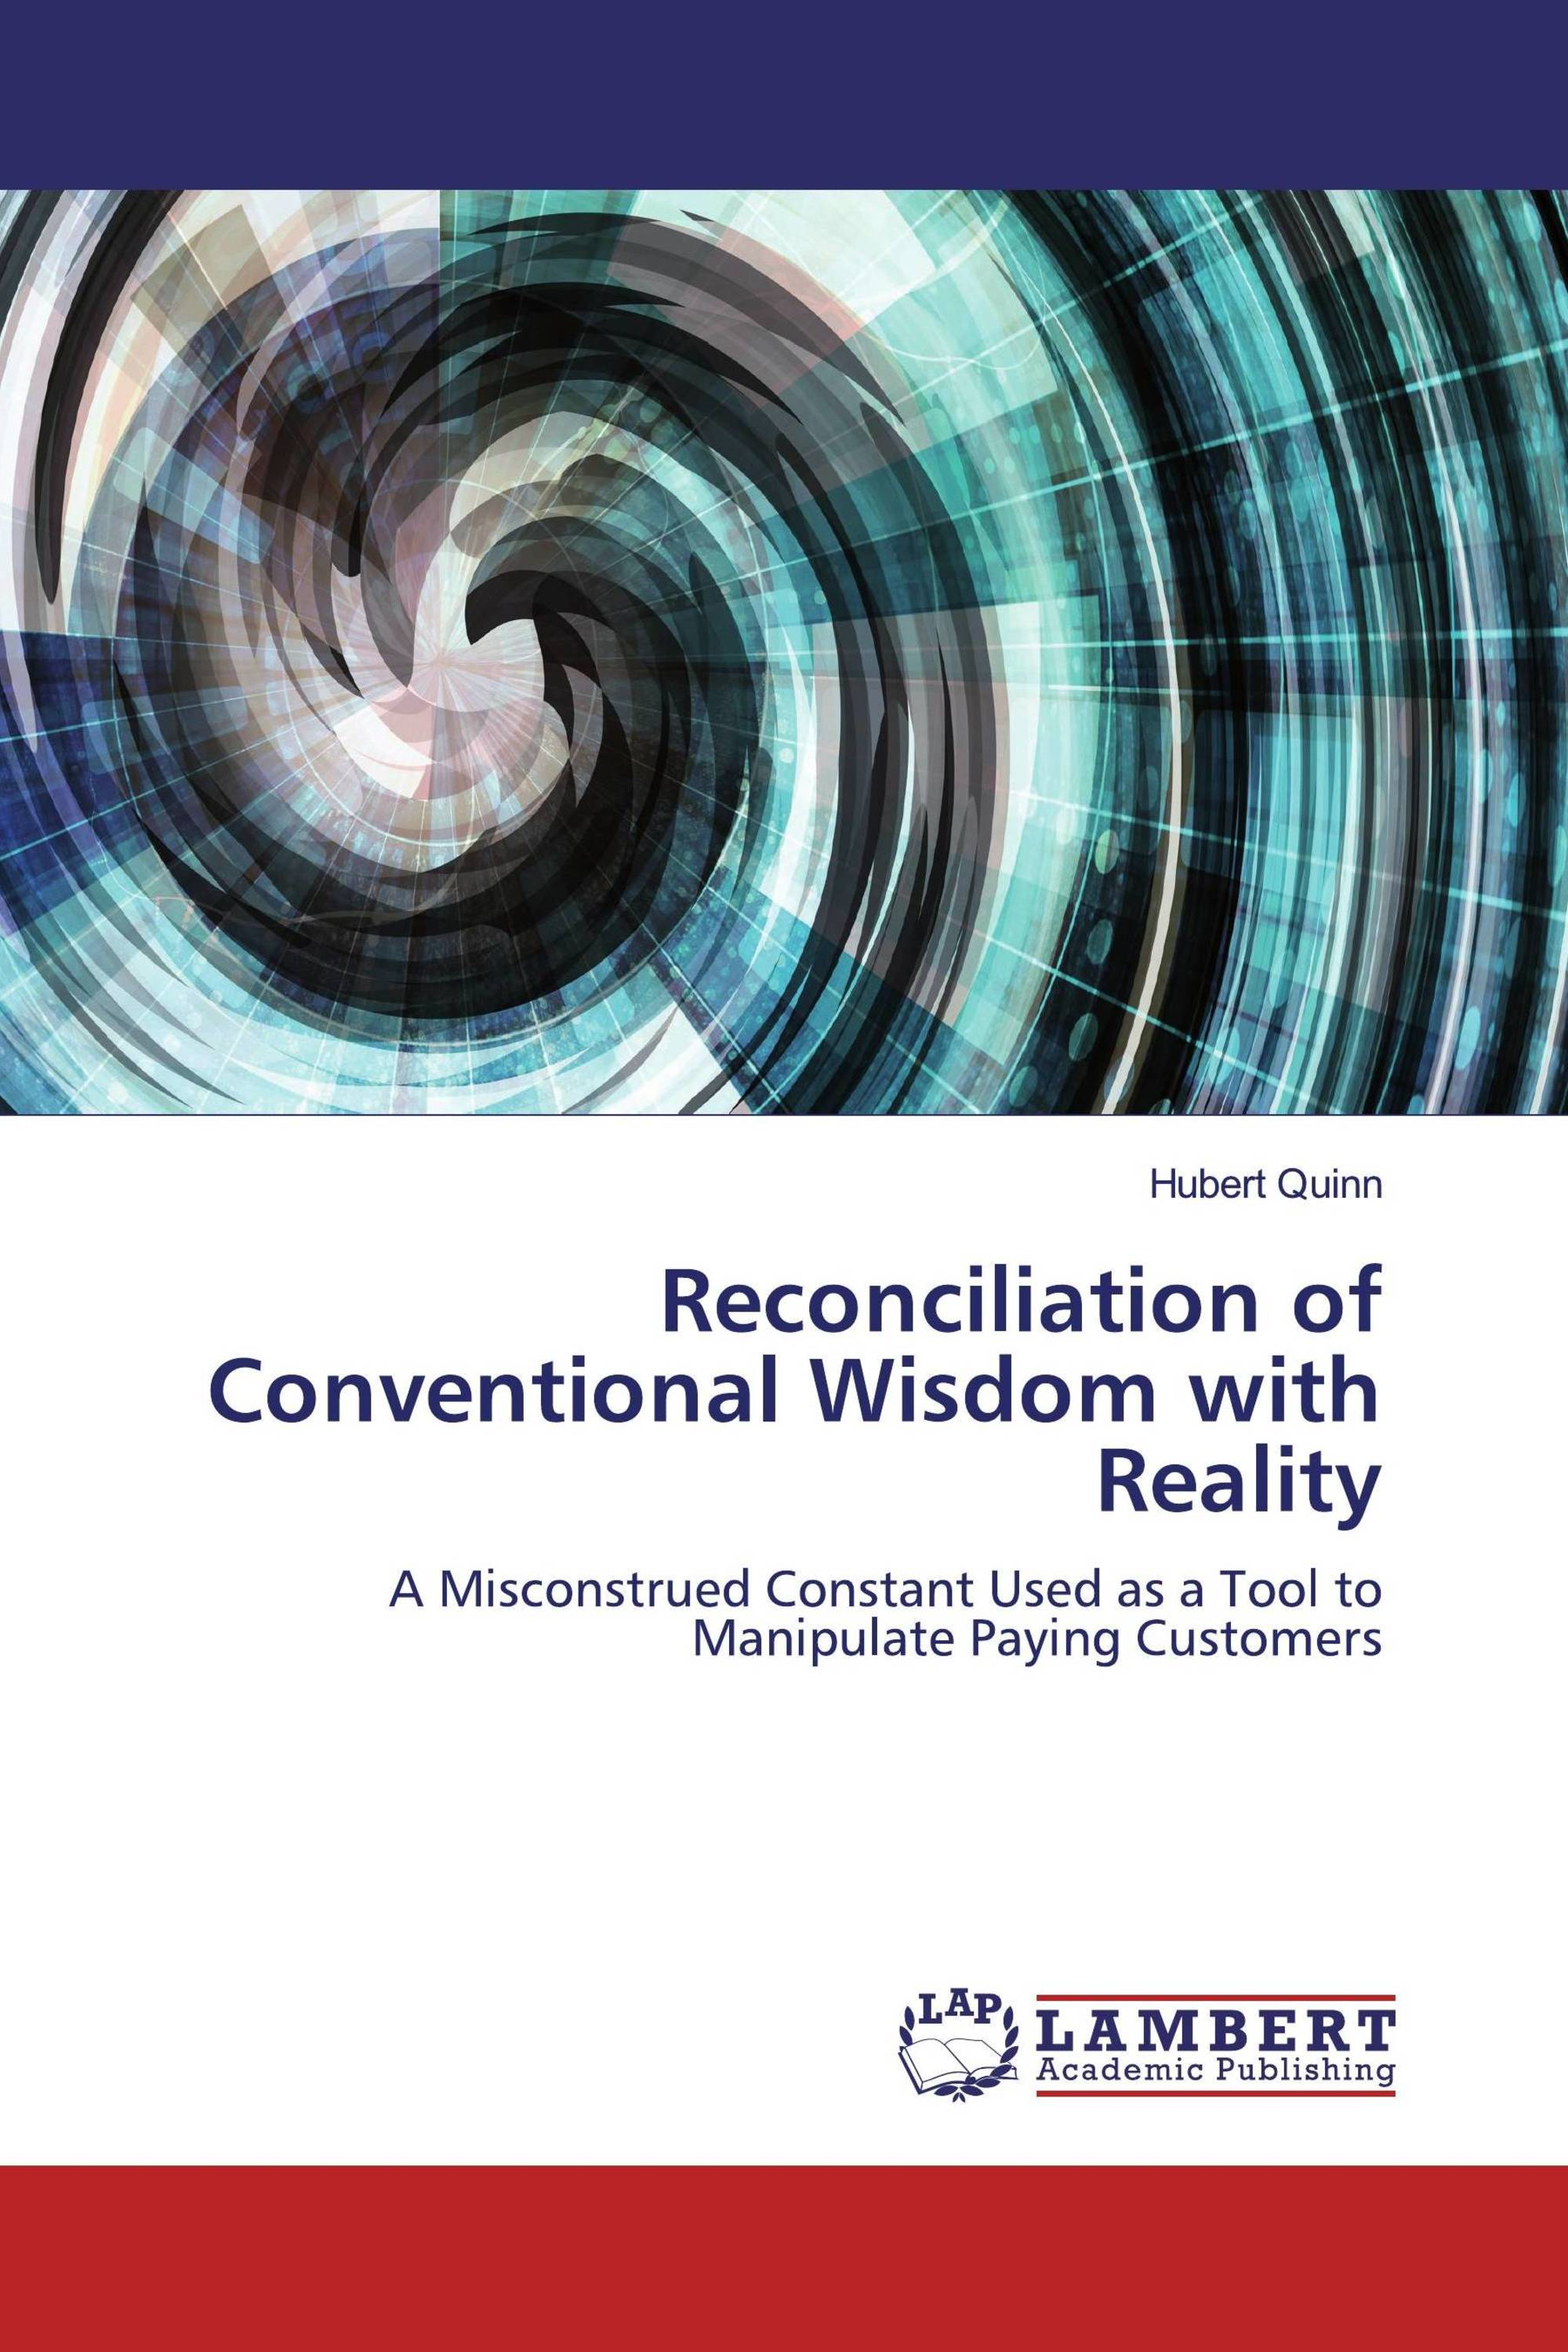 Reconciliation of Conventional Wisdom with Reality